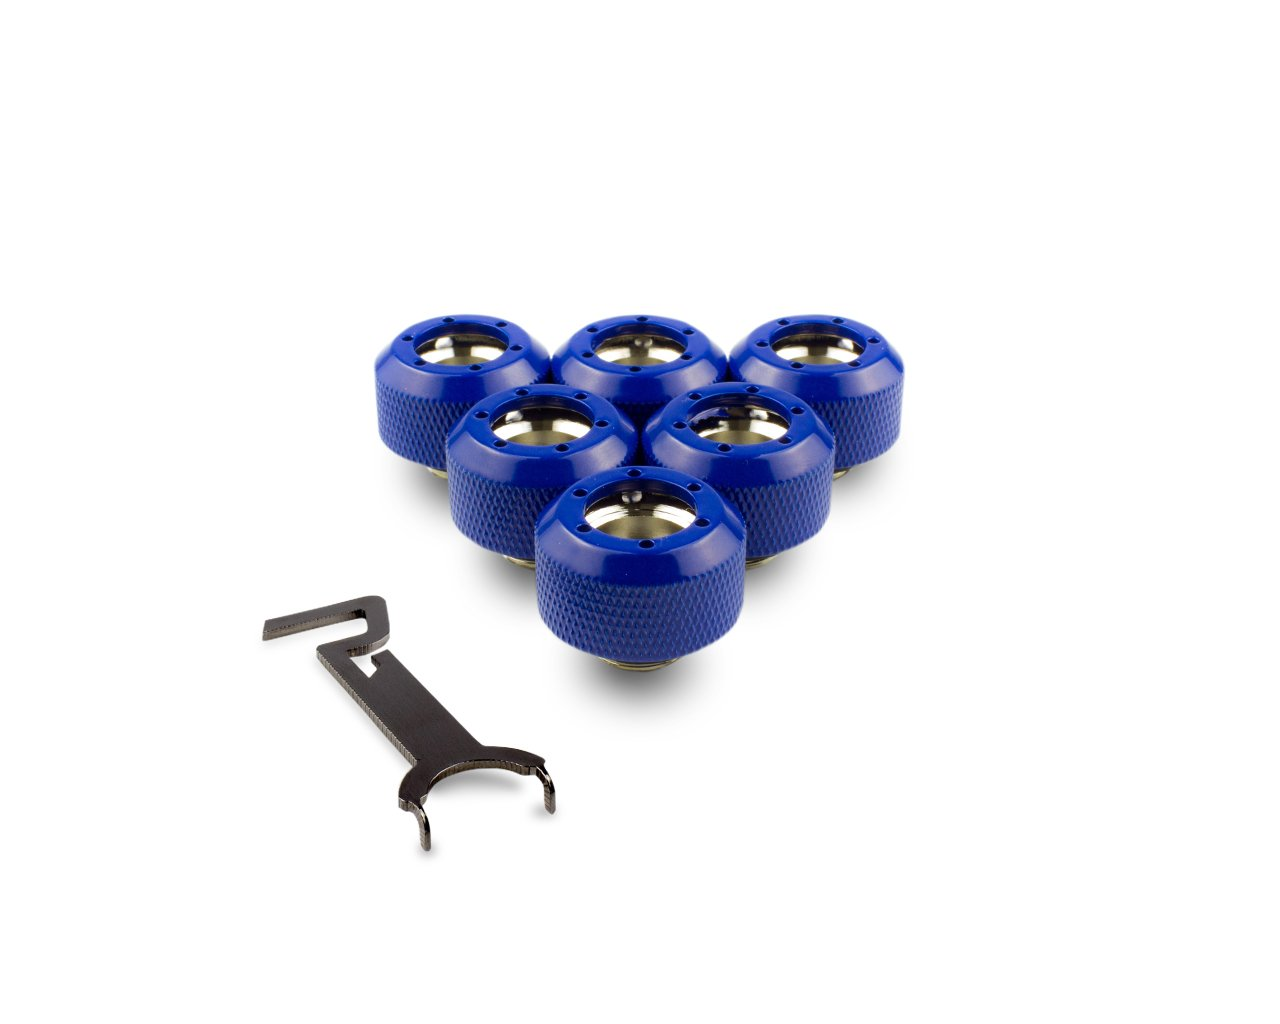 PrimoChill 1/2in. Rigid RevolverSX Series Fitting - True Blue - 6 Pack